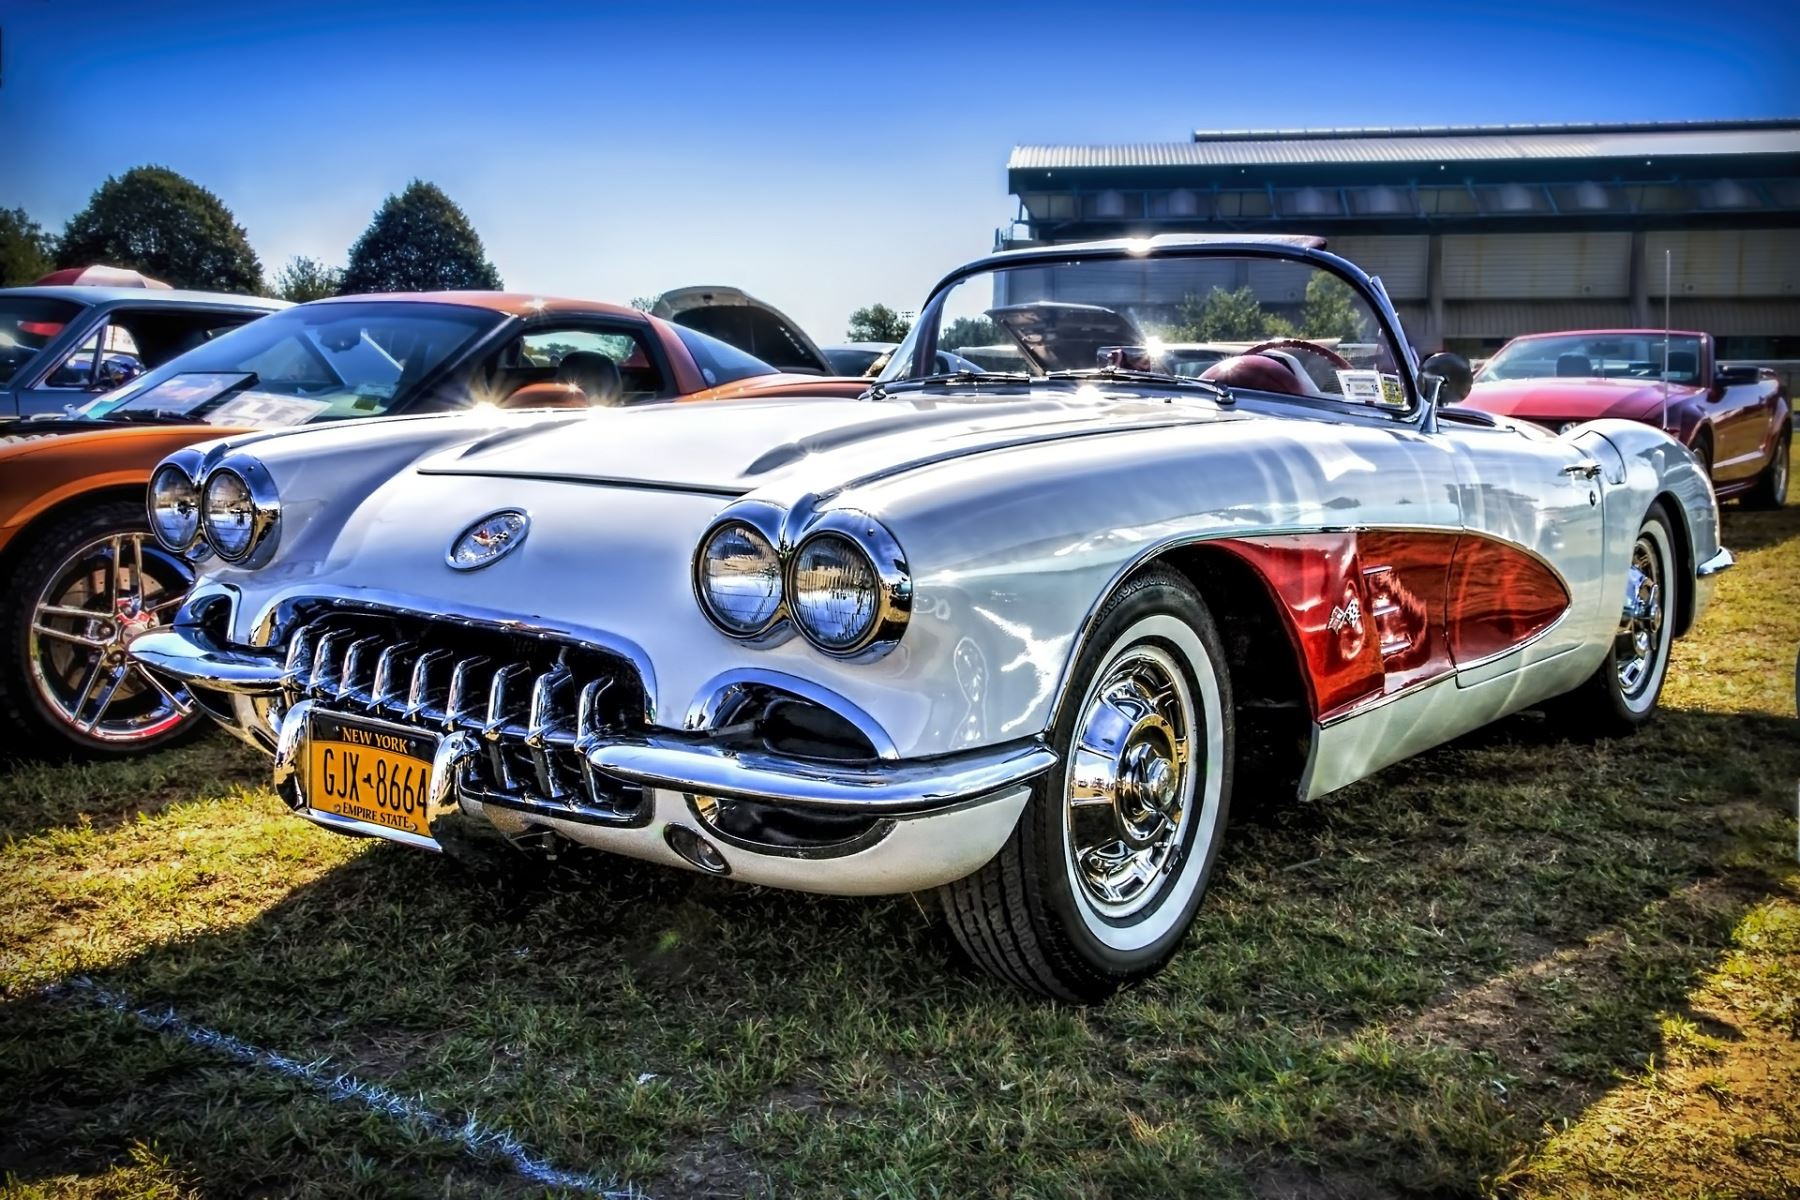 Tips For Attending San Diego Car Shows And Events Convoy Auto Repair - San diego car show schedule